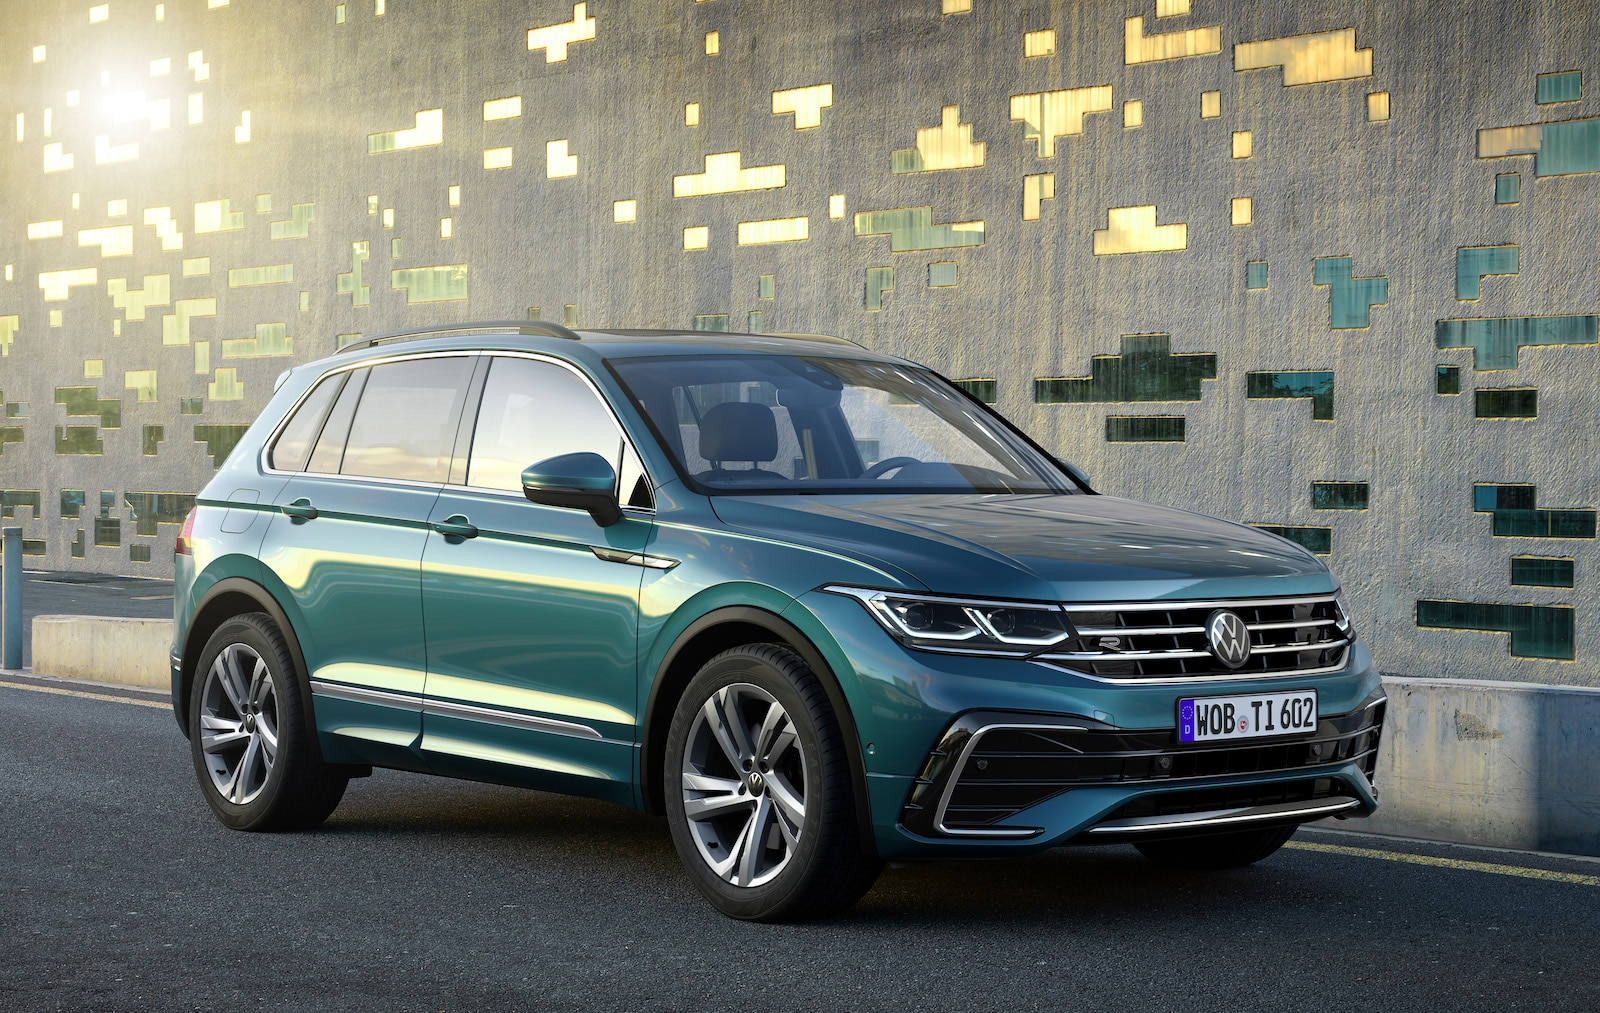 Volkswagen Tiguan looks like a Golf on stilts